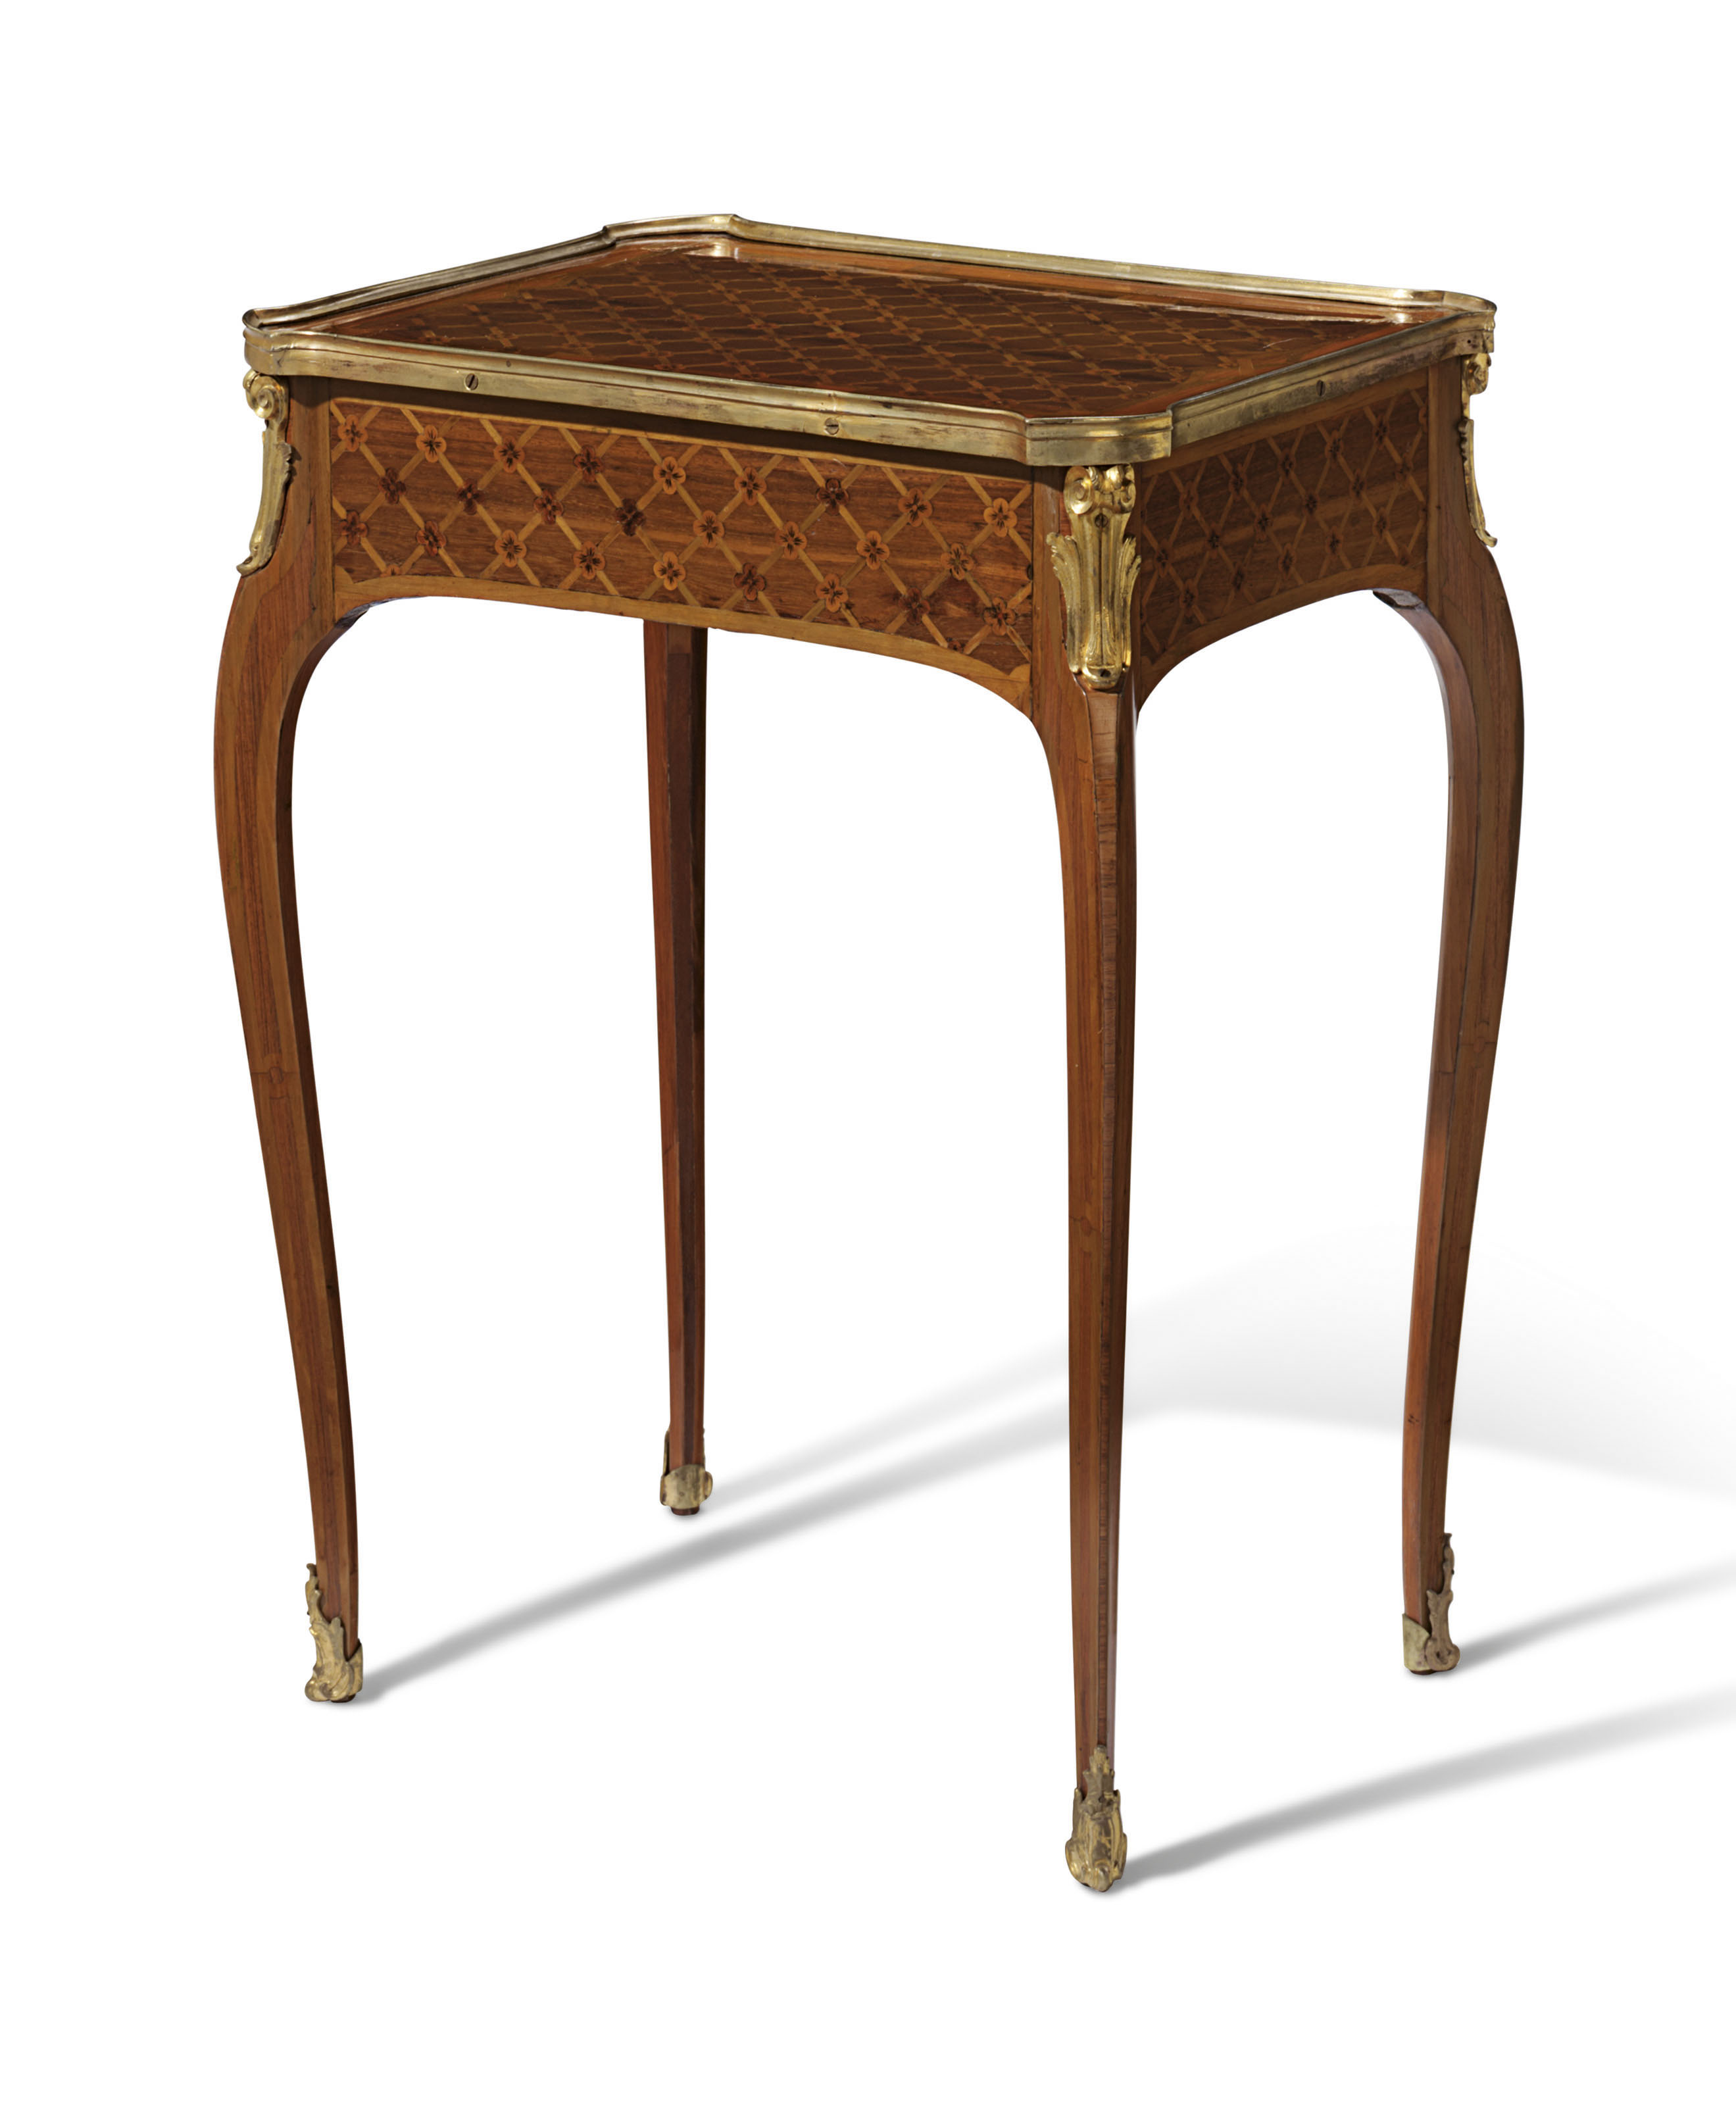 A LATE LOUIS XV ORMOLU-MOUNTED TULIPWOOD AMARANTH AND FRUITWOOD PARQUETRY TABLE EN CHIFFONNIERE